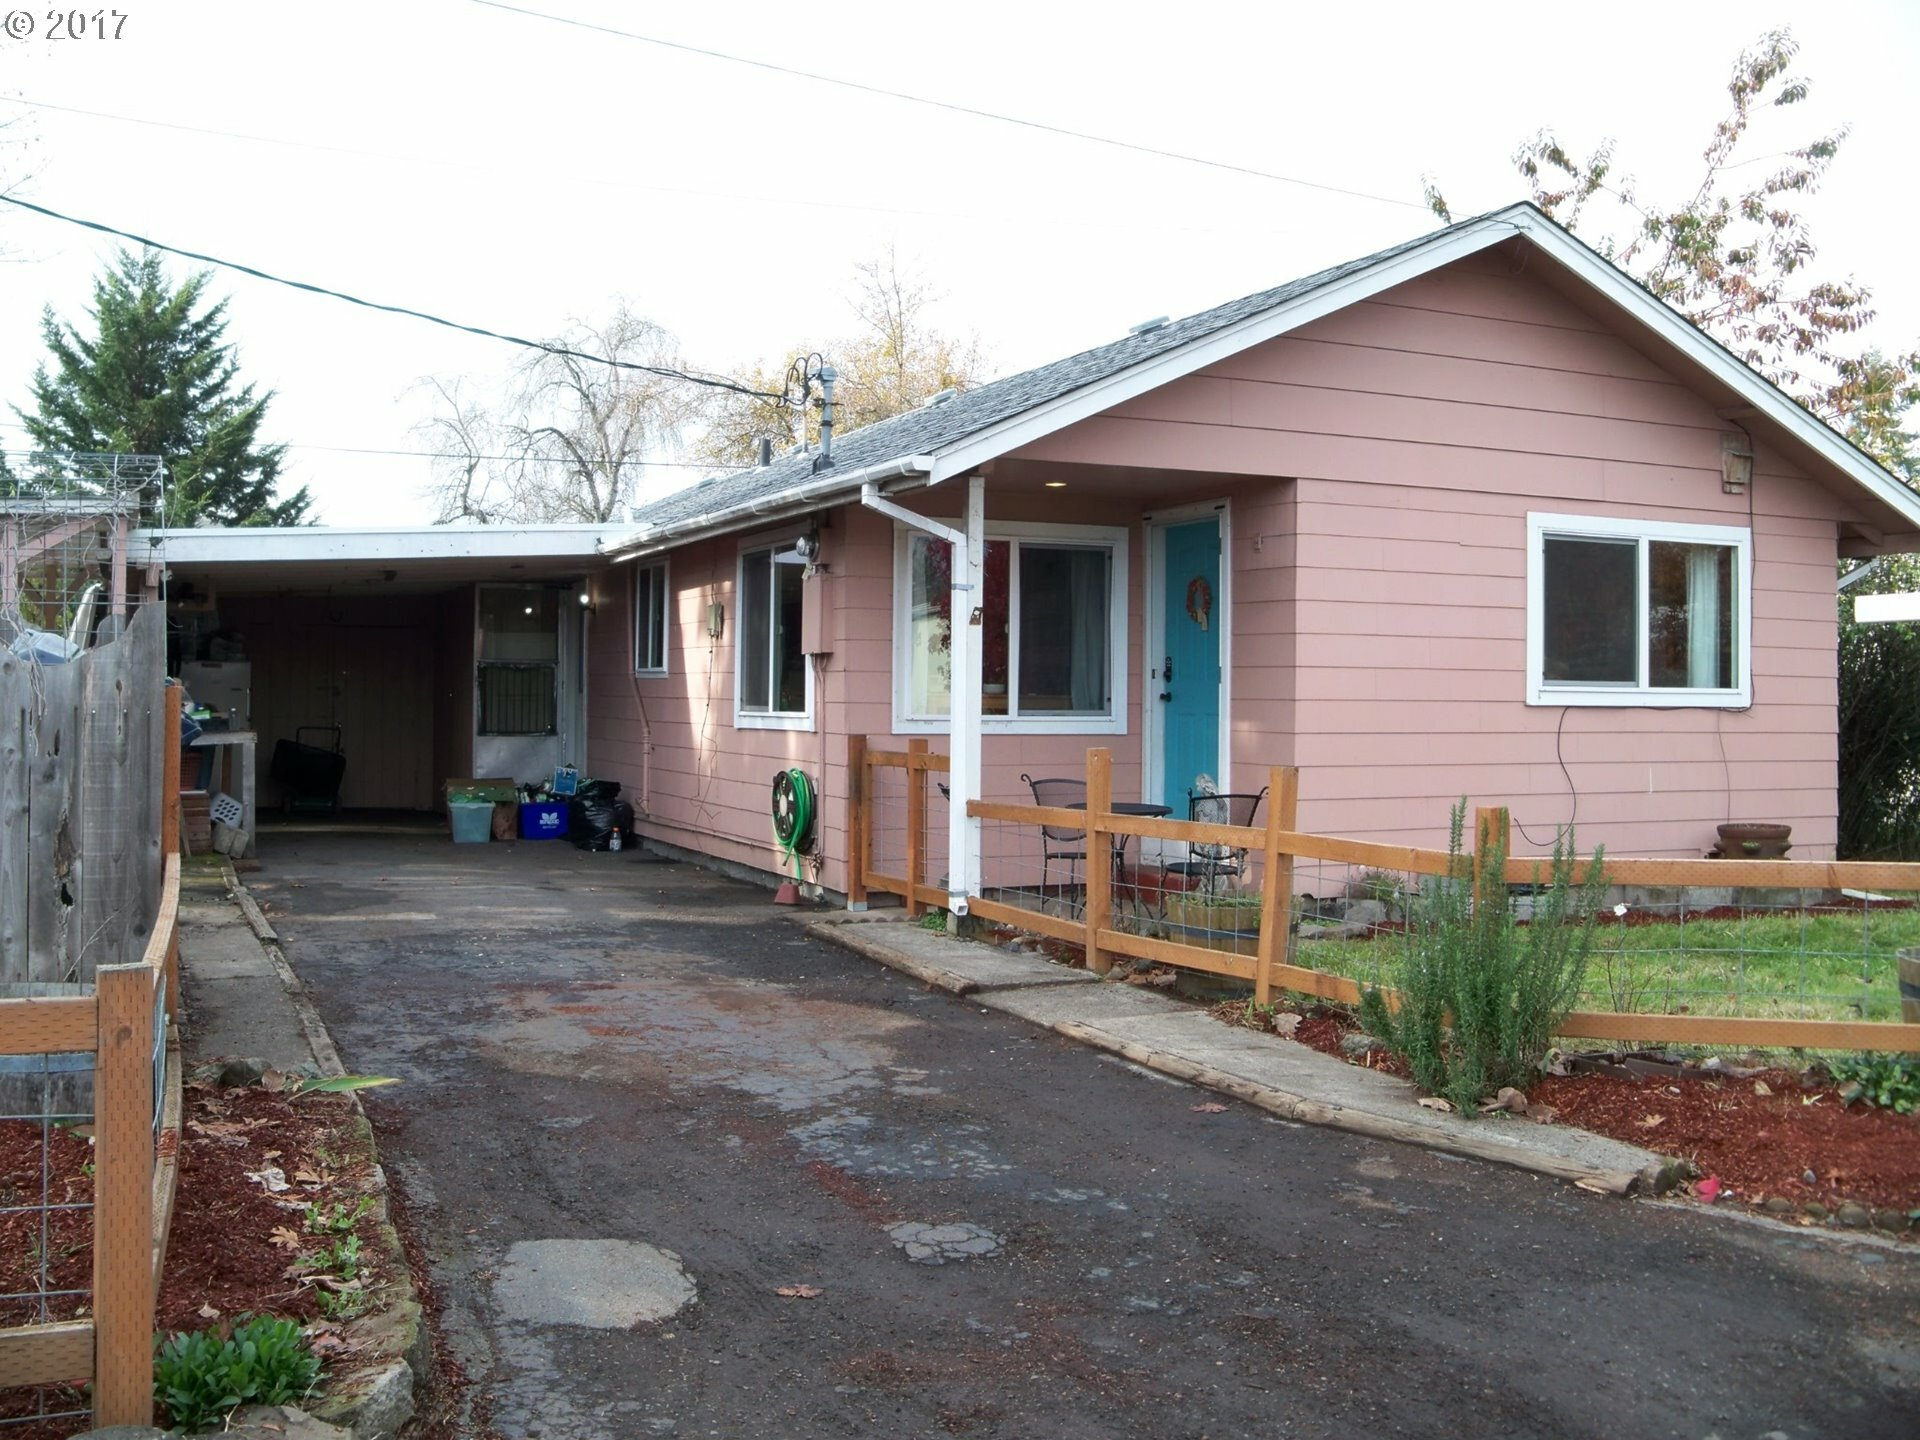 730 23rd St, Springfield, OR - USA (photo 1)